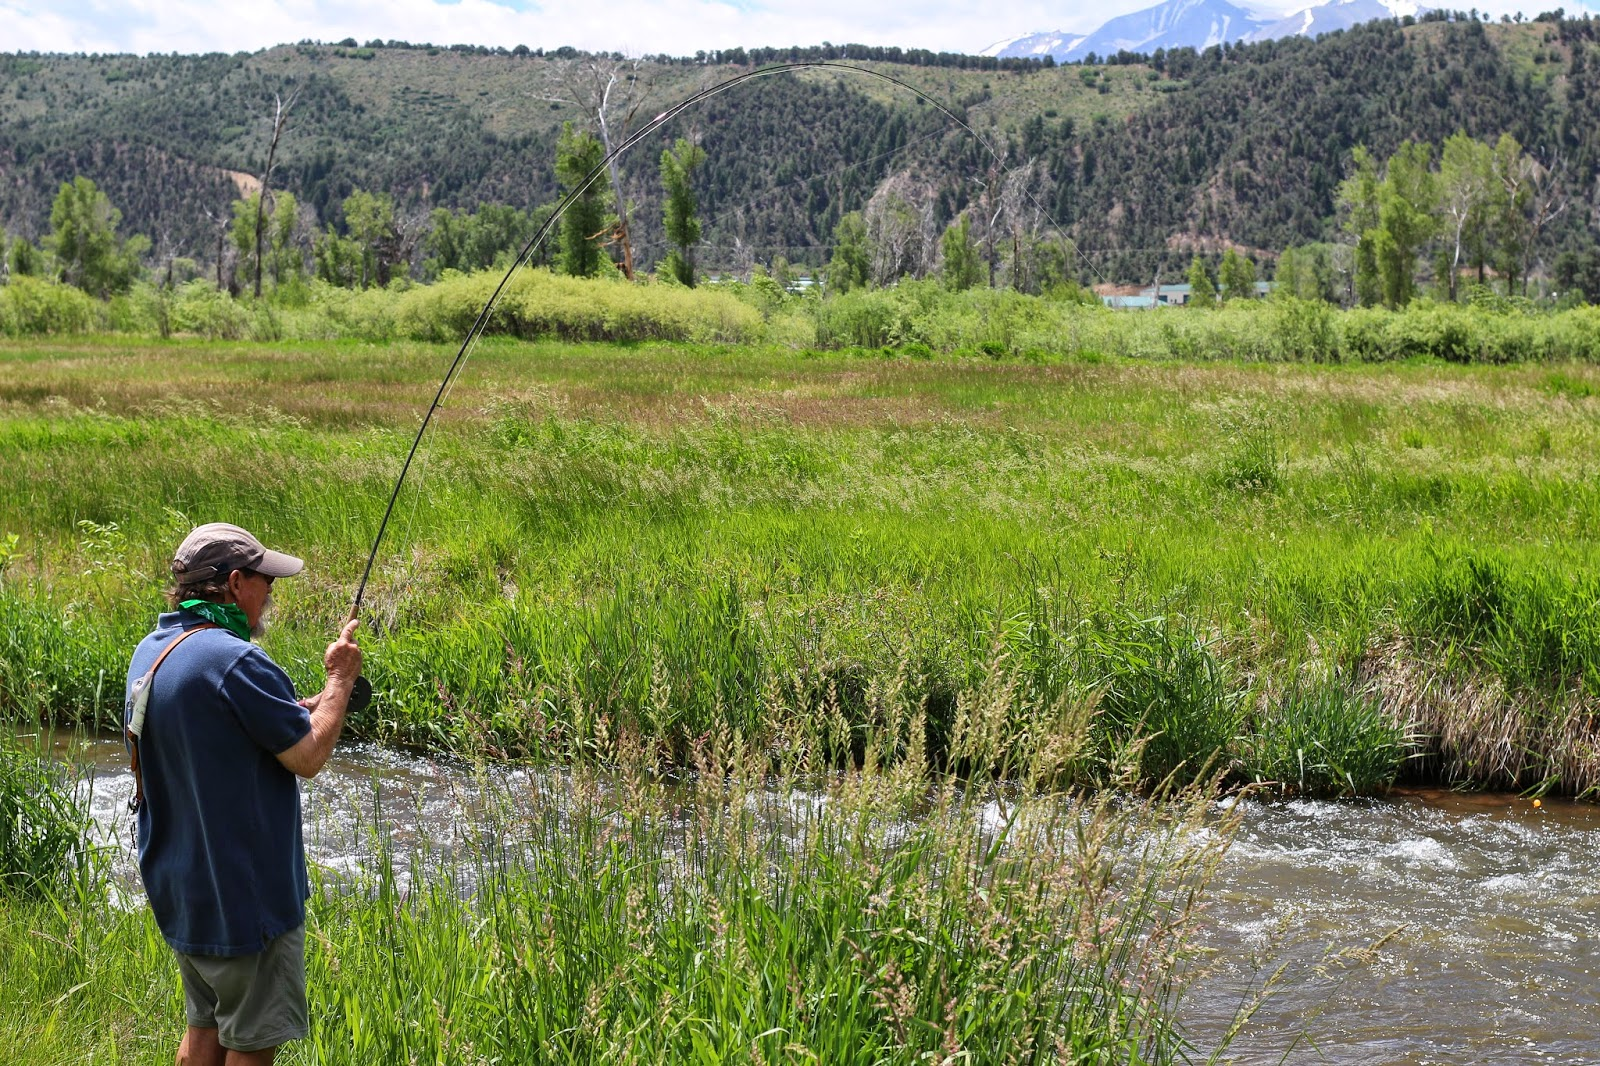 Fly+Fish+for+brown+trout+in+Colorado+with+Jay+Scott+Outdoors+2.JPG